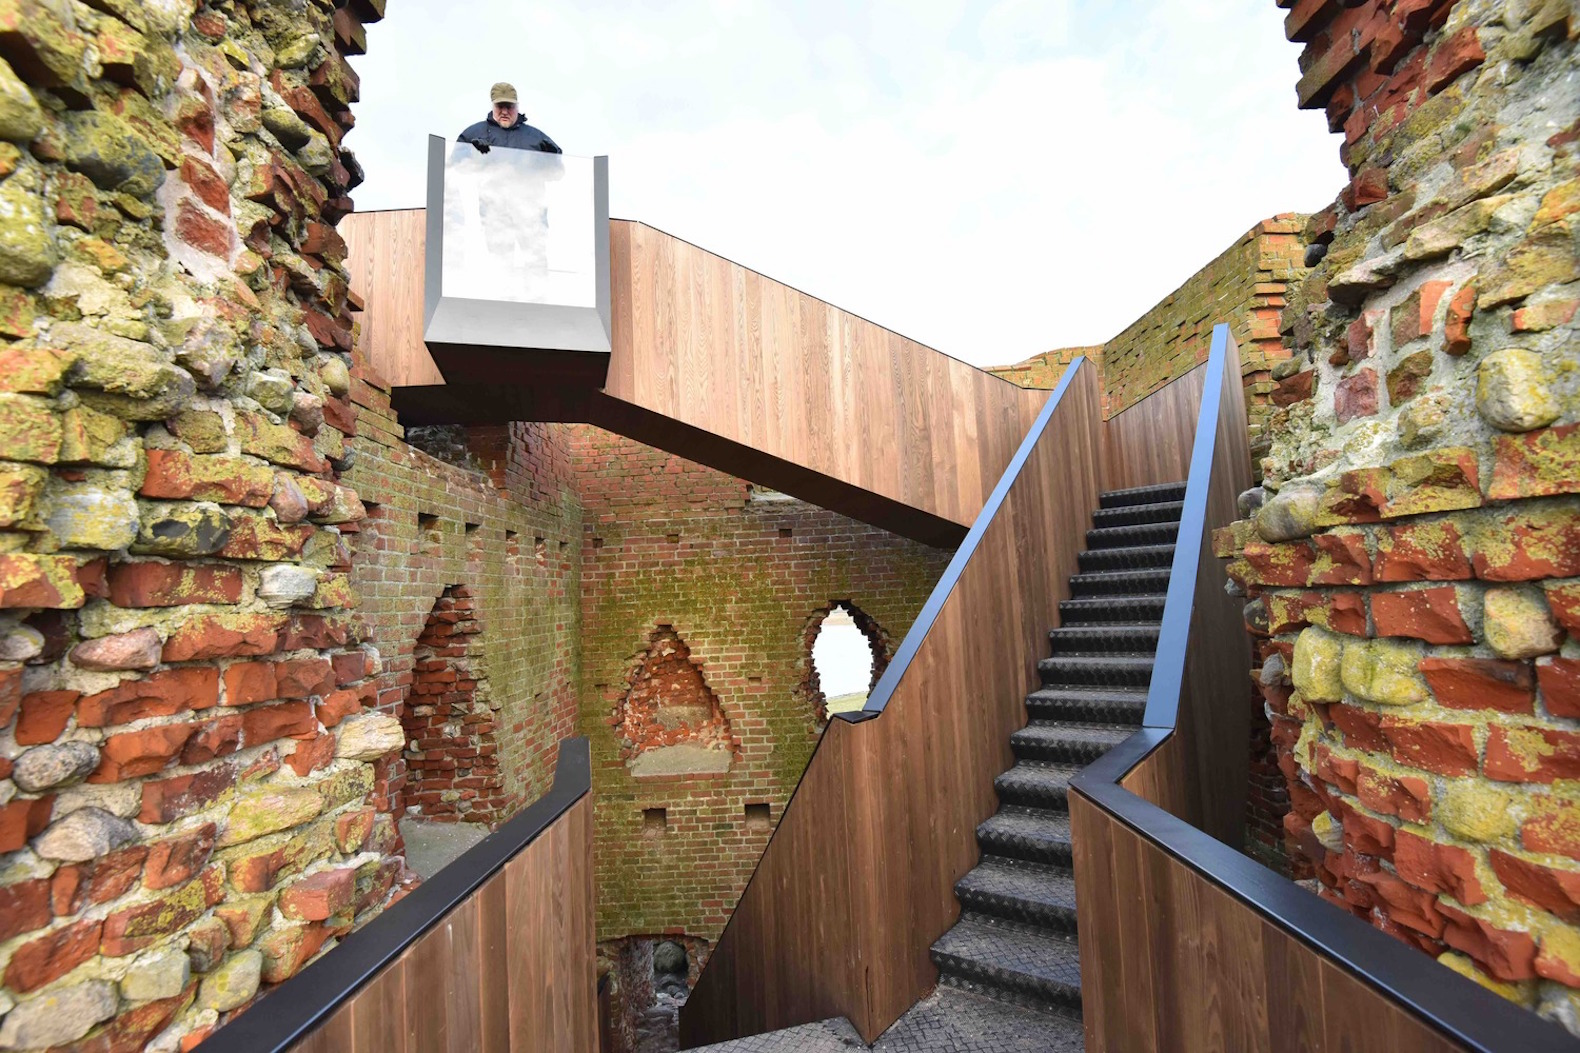 2017 European Mies van der Rohe Award, Kalø Slotsruin, Kalø Slotsruin visitor access, Kalø Slotsruin staircase, prefabricated staircase, restoring access to historical ruins, brick medieval ruins in Denmark, Kalø Slotsruin intervention by MAP Architects,